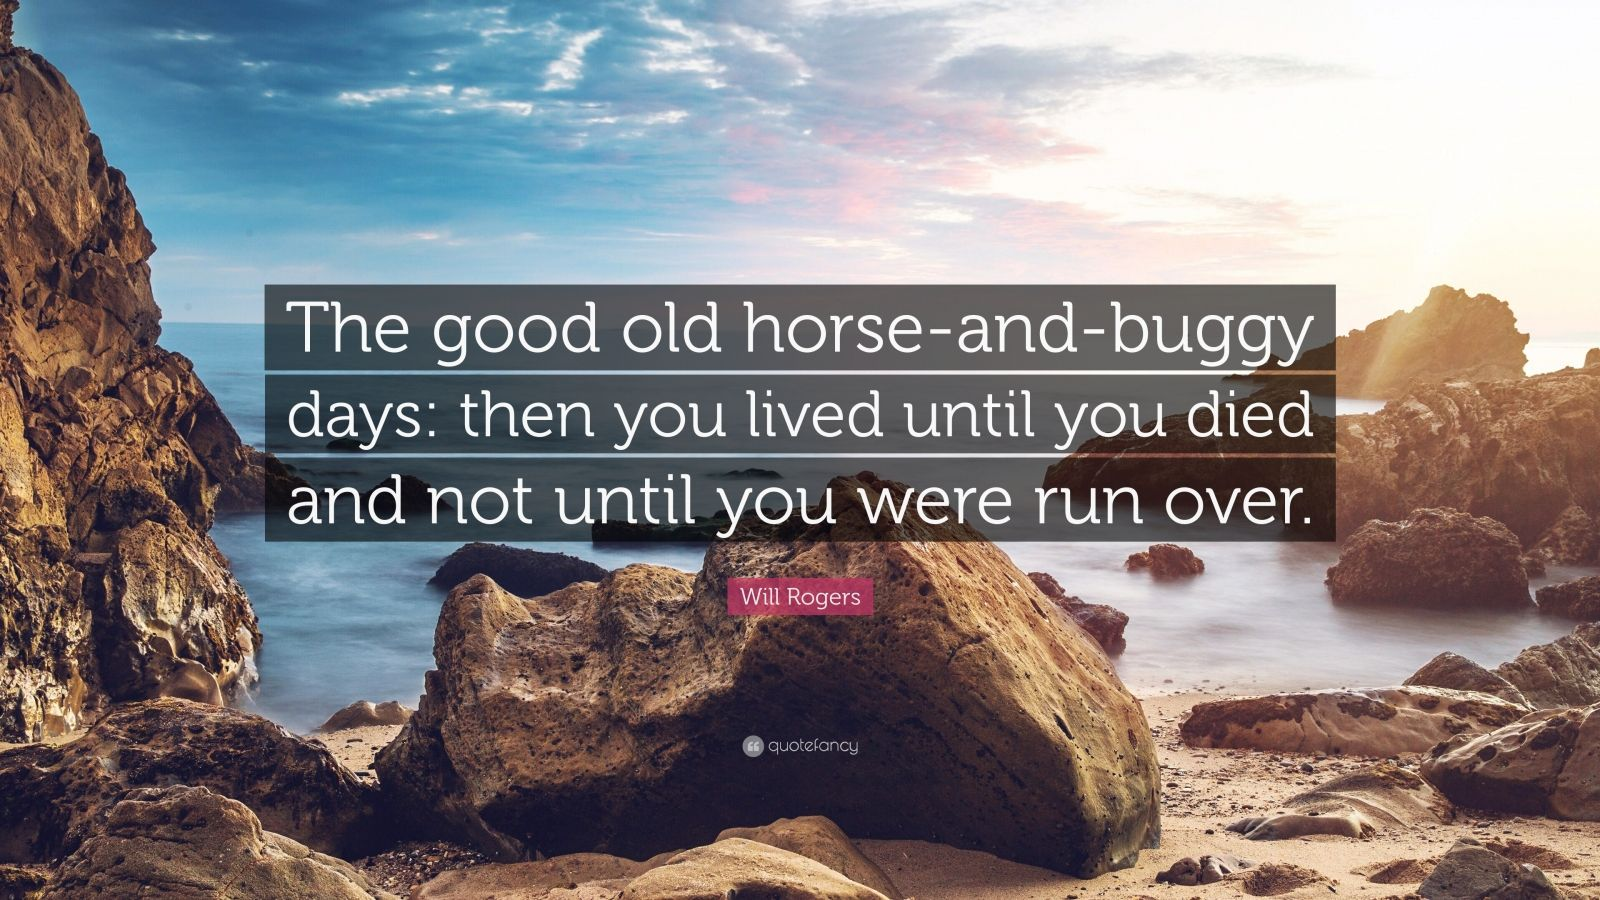 """Will Rogers Quote: """"The good old horse-and-buggy days: then you lived until you died and not until you were run over."""""""